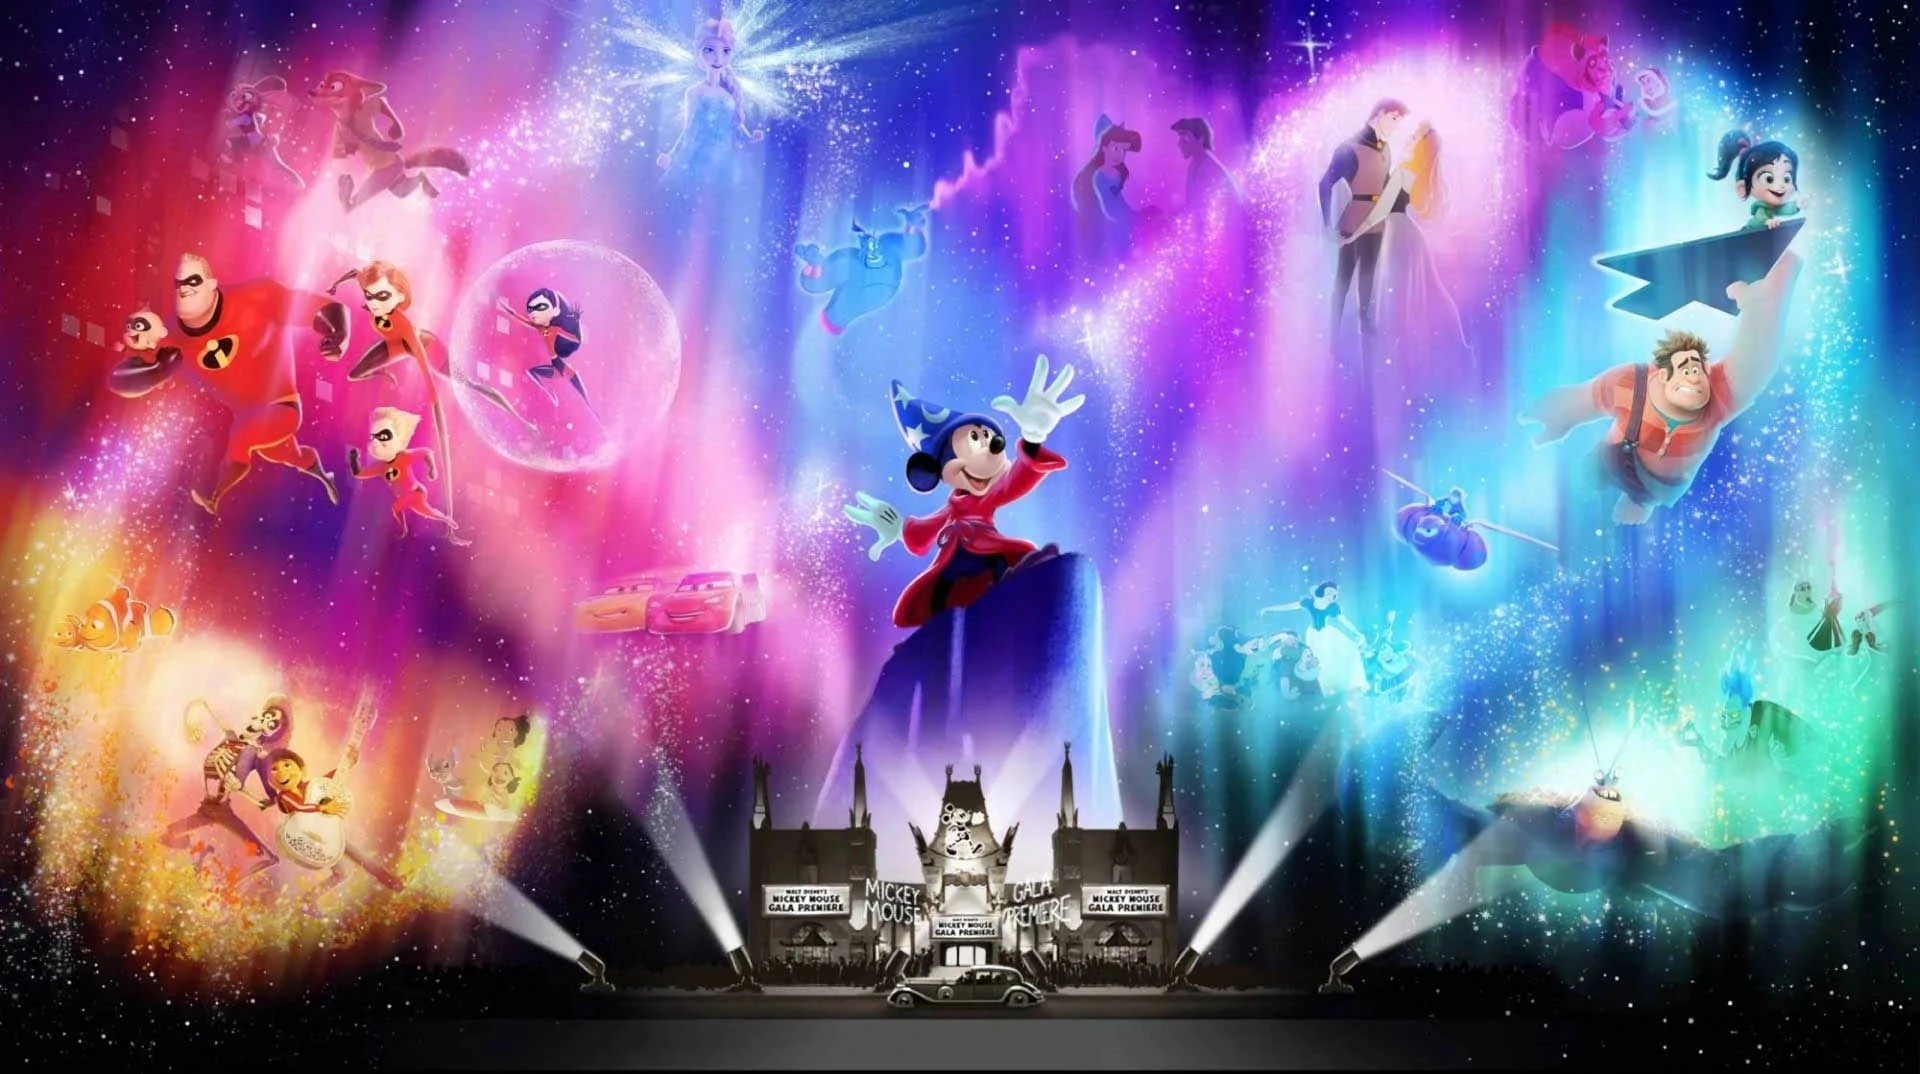 Dante On This Page Quotes Wallpaper Image Wiki Background Disney Wiki Fandom Powered By